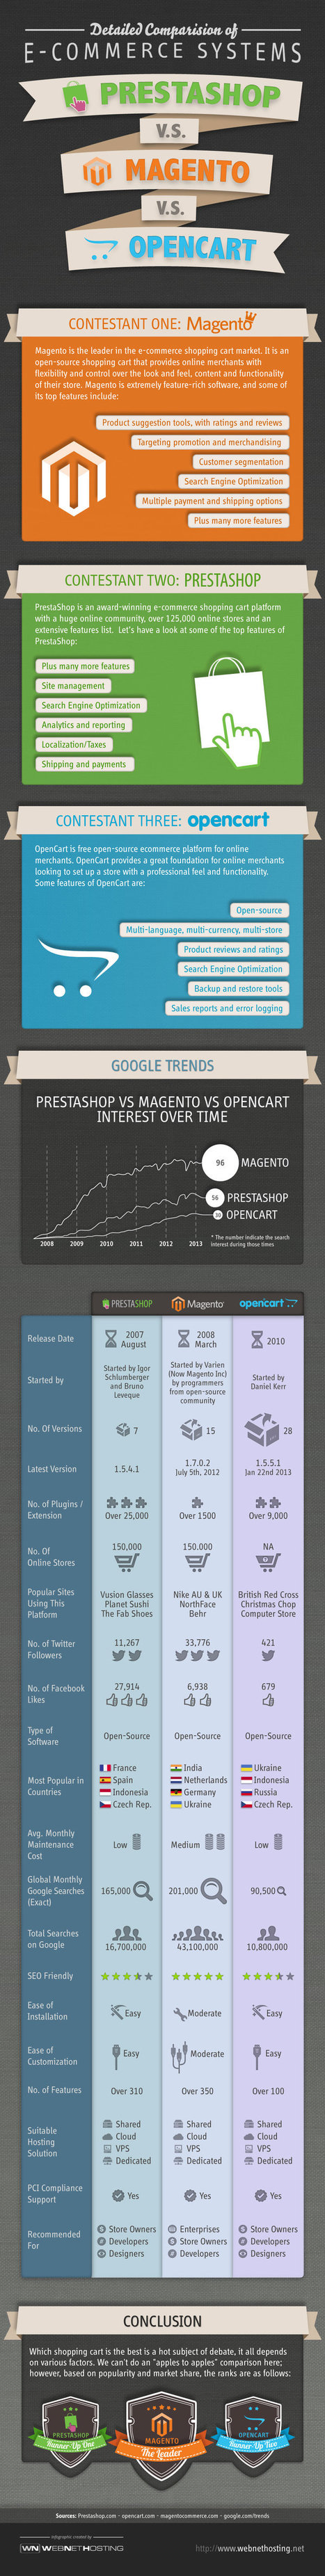 Prestashop vs Magento vs Opencart - Detailed Comparison | Time to Learn | Scoop.it